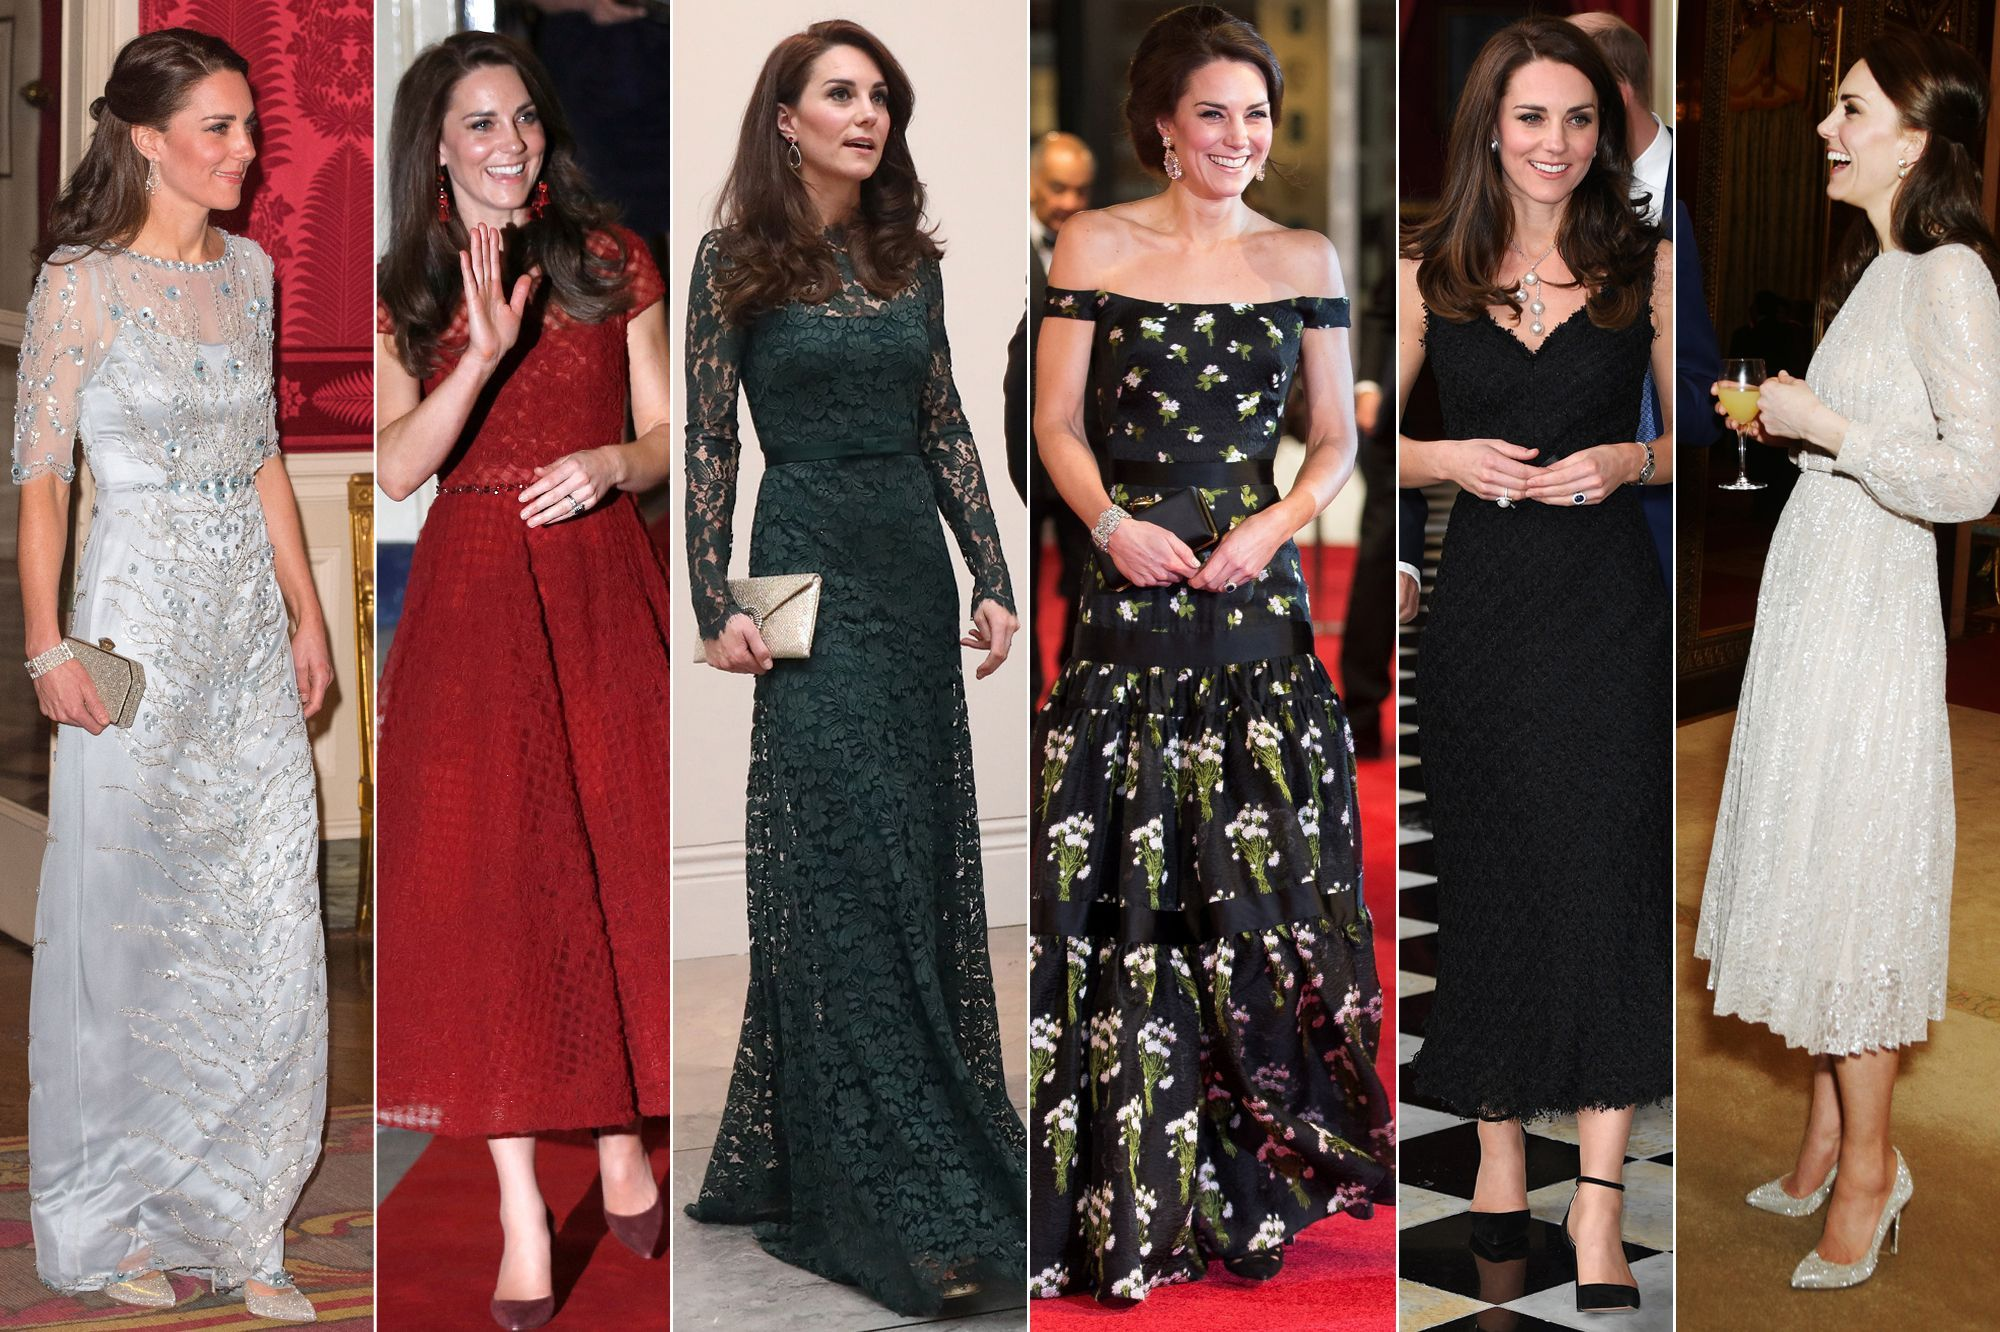 b6dc5e82dbf Royal Style - Kate Middleton